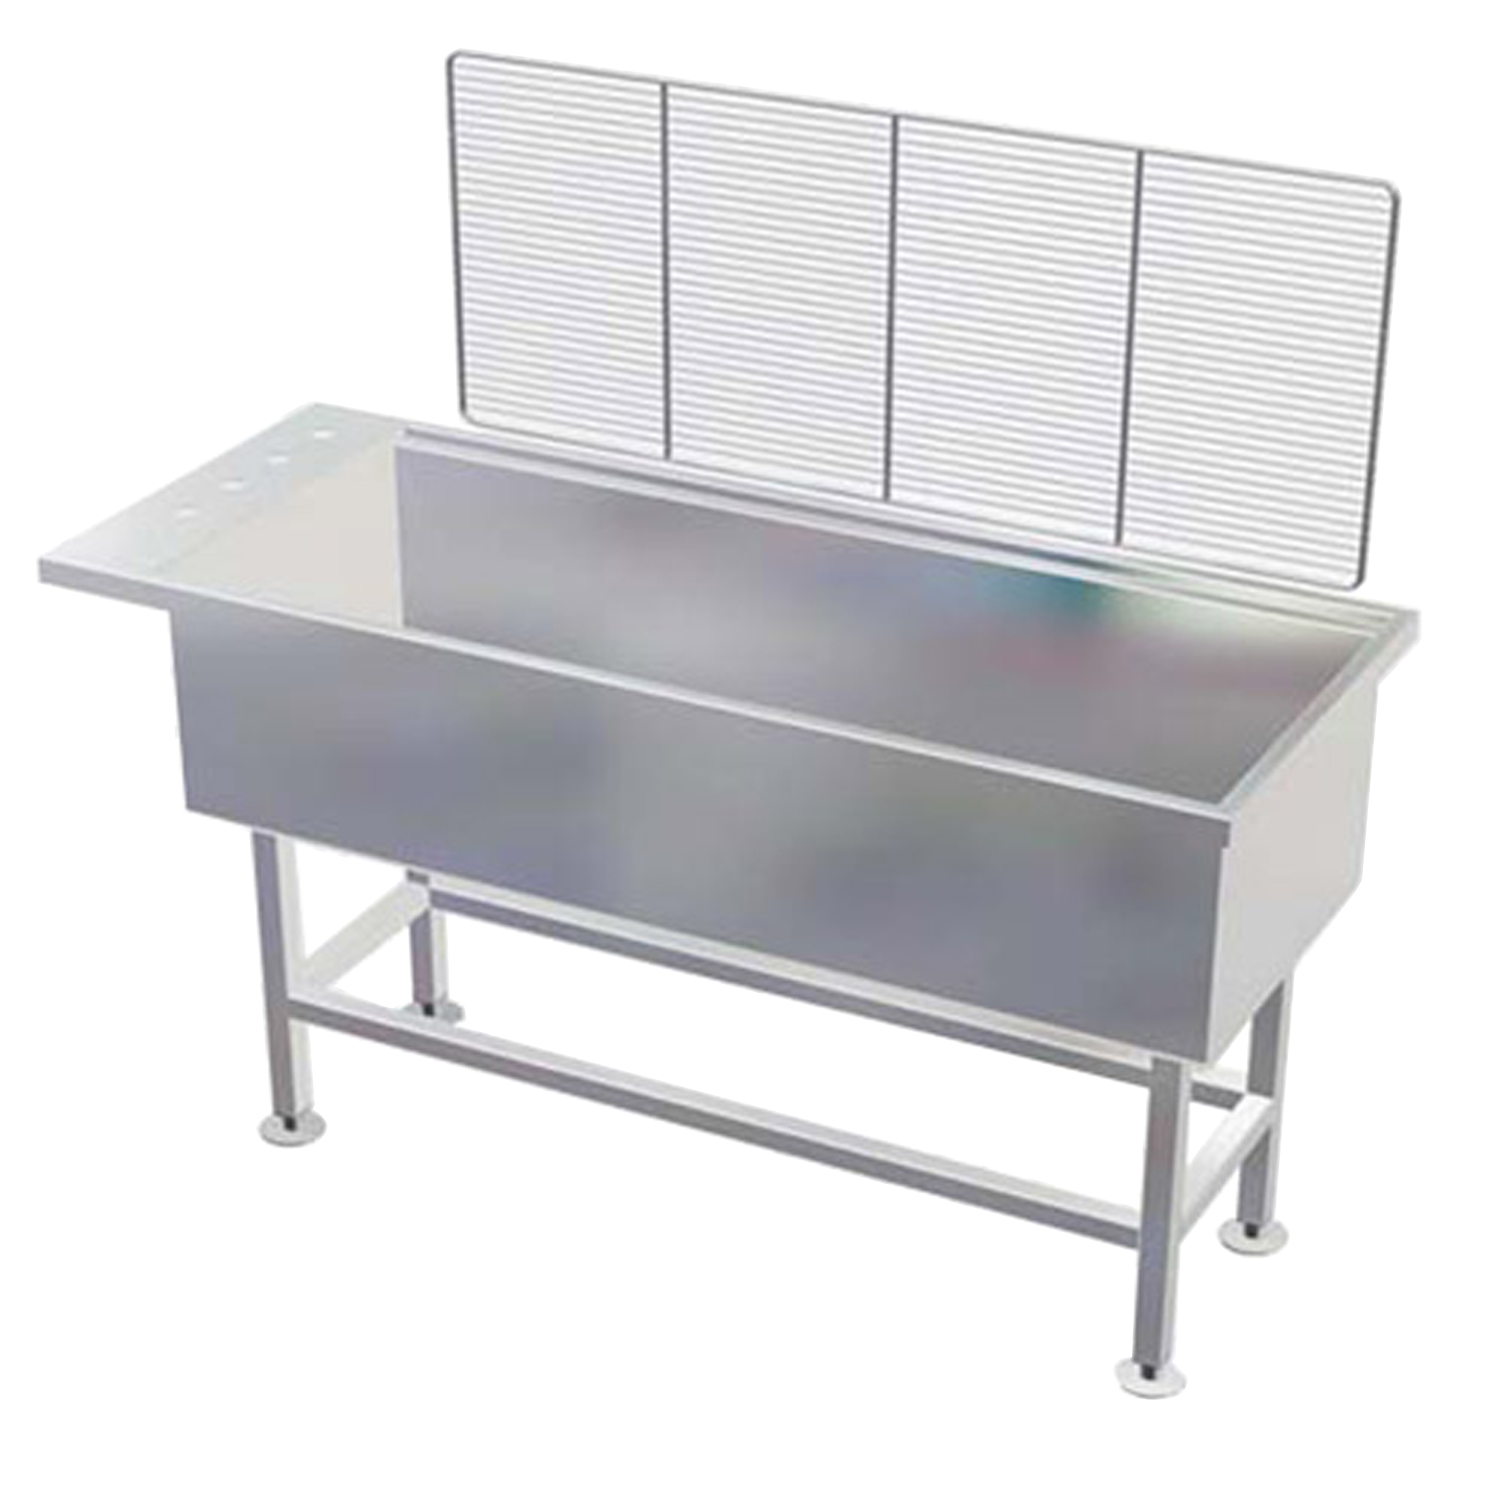 "Avante Stainless Steel 15"" Deep Wet Table"